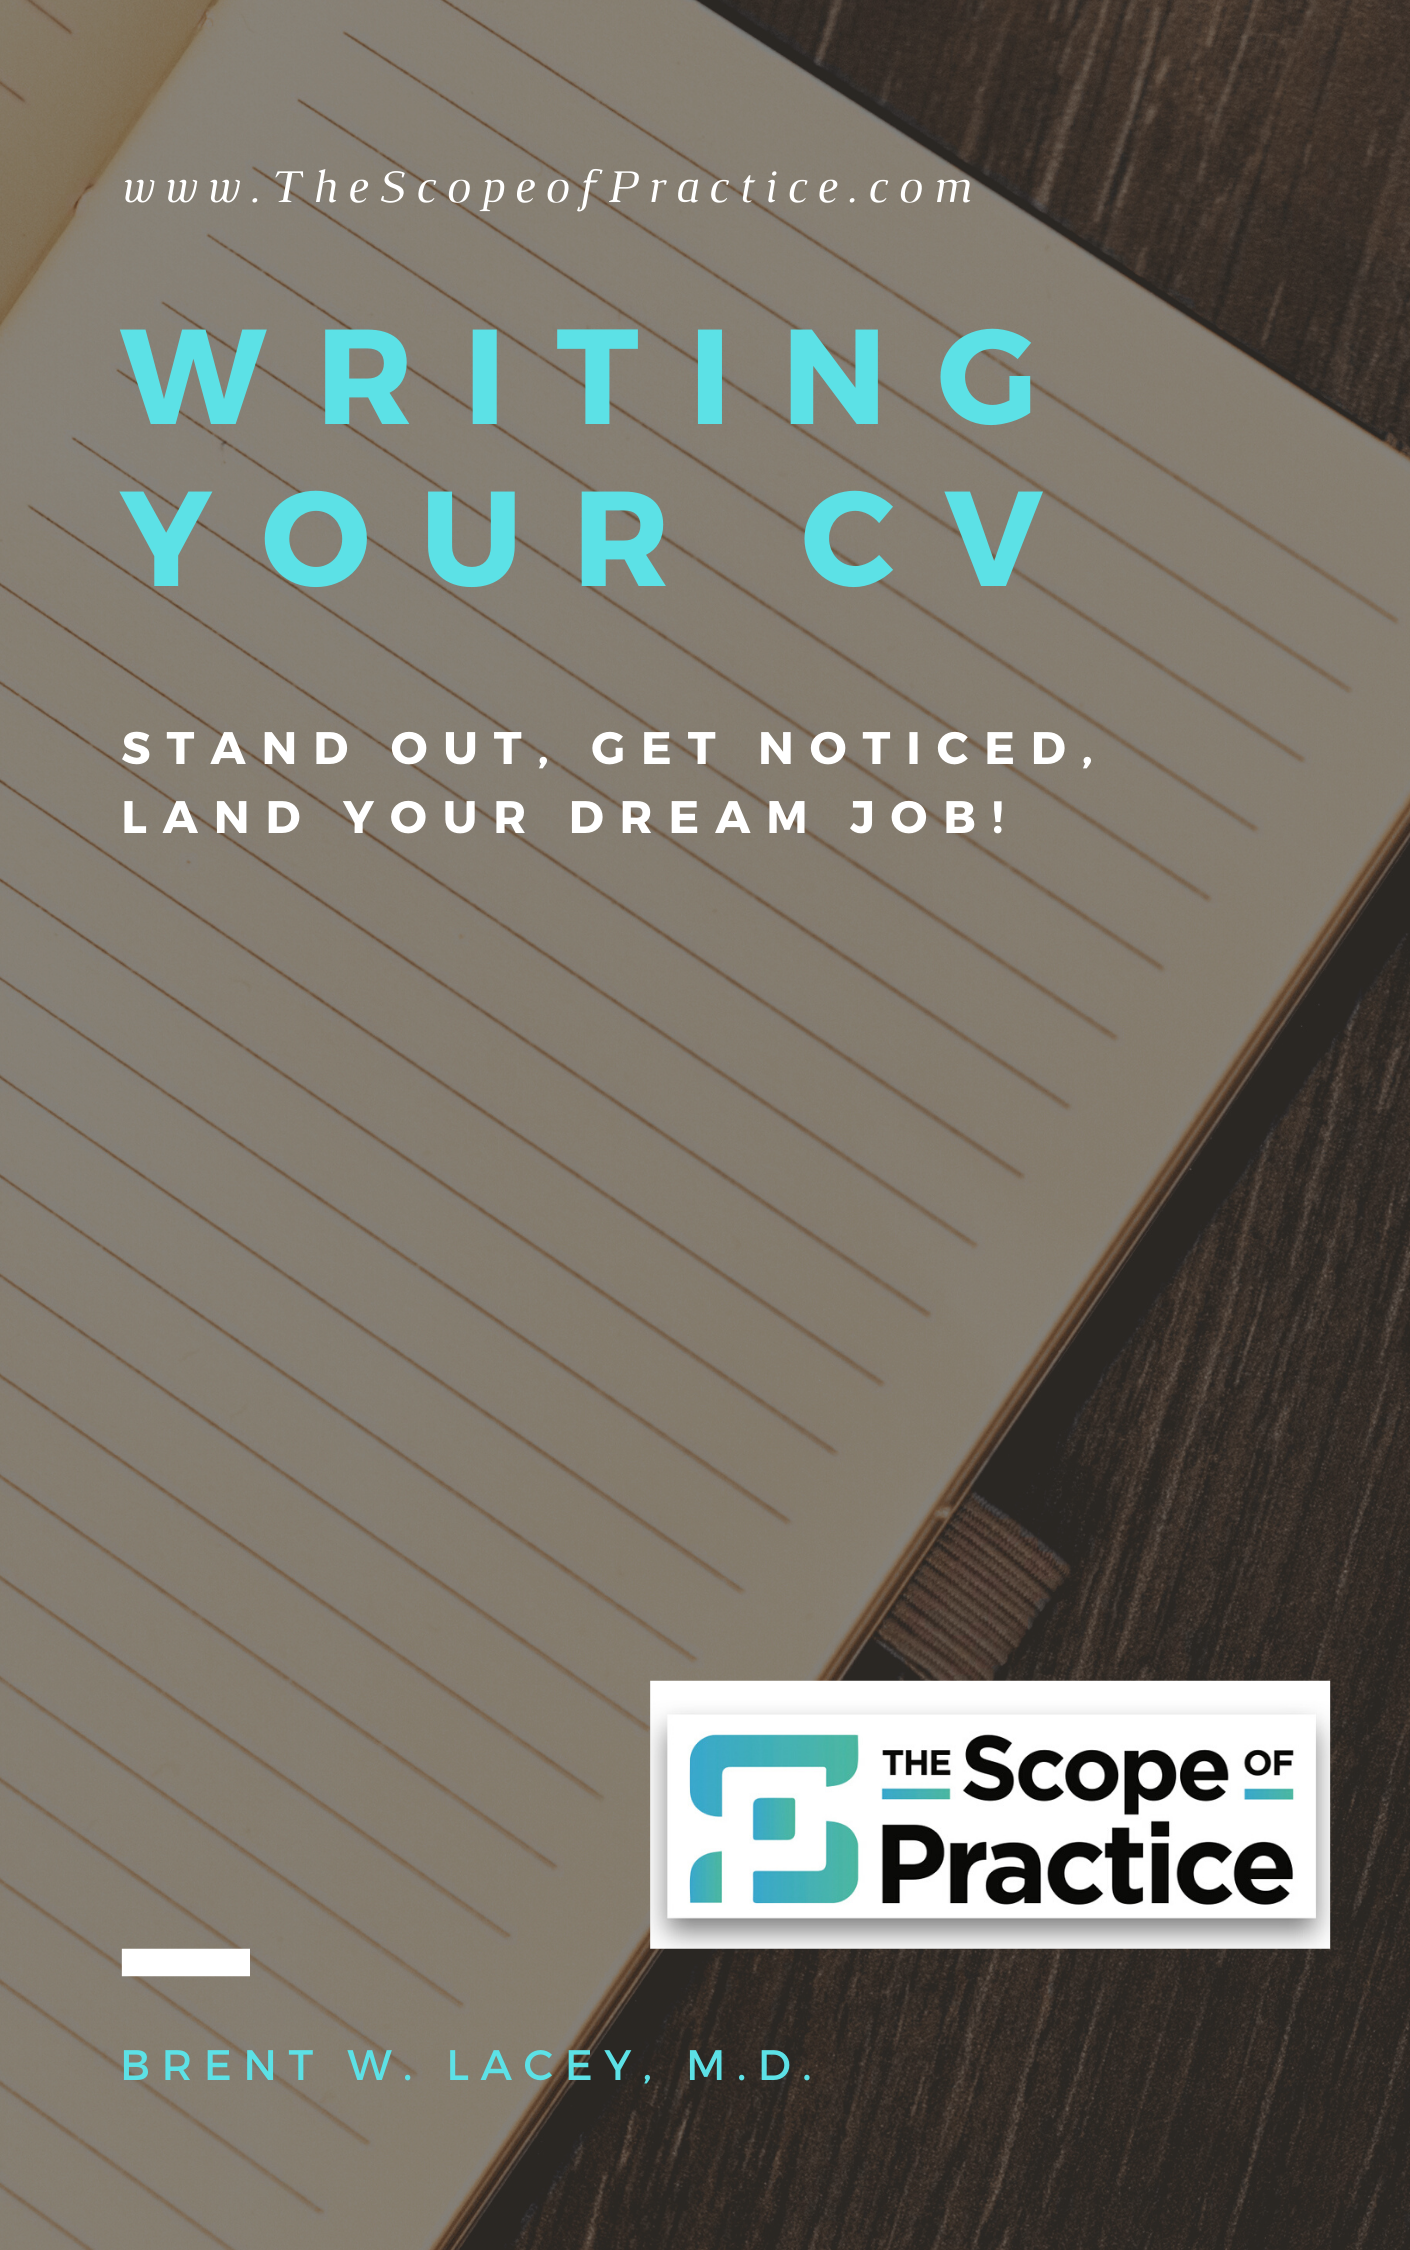 Physician Moms Group writing your CV resume